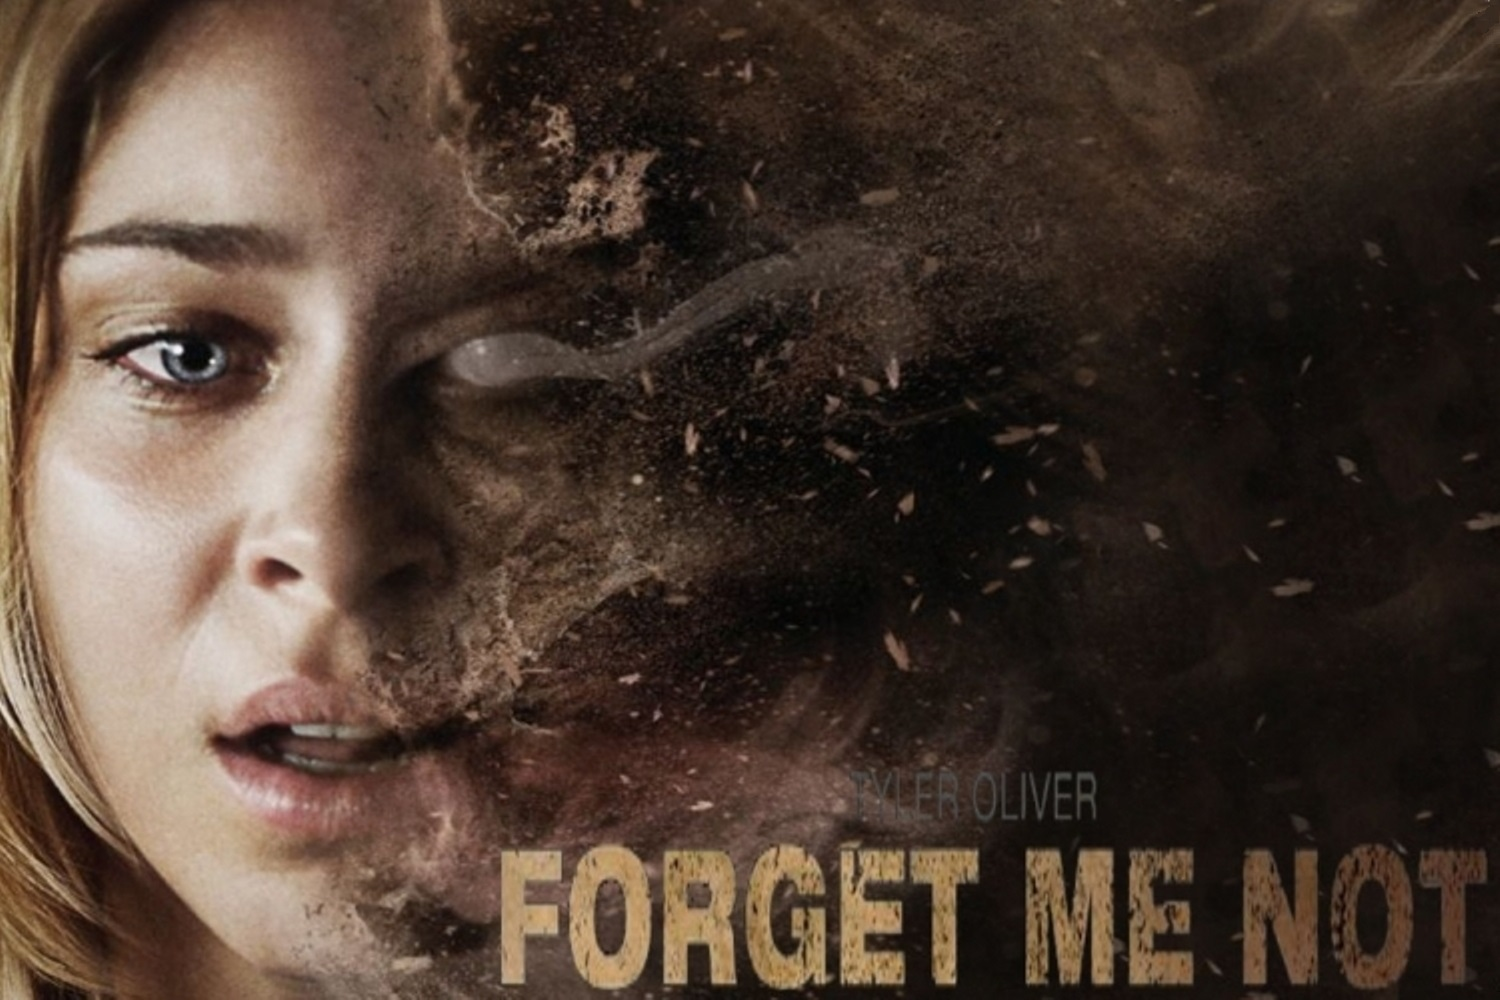 Не забывай меня (Незабудка) / Forget Me Not (2009)